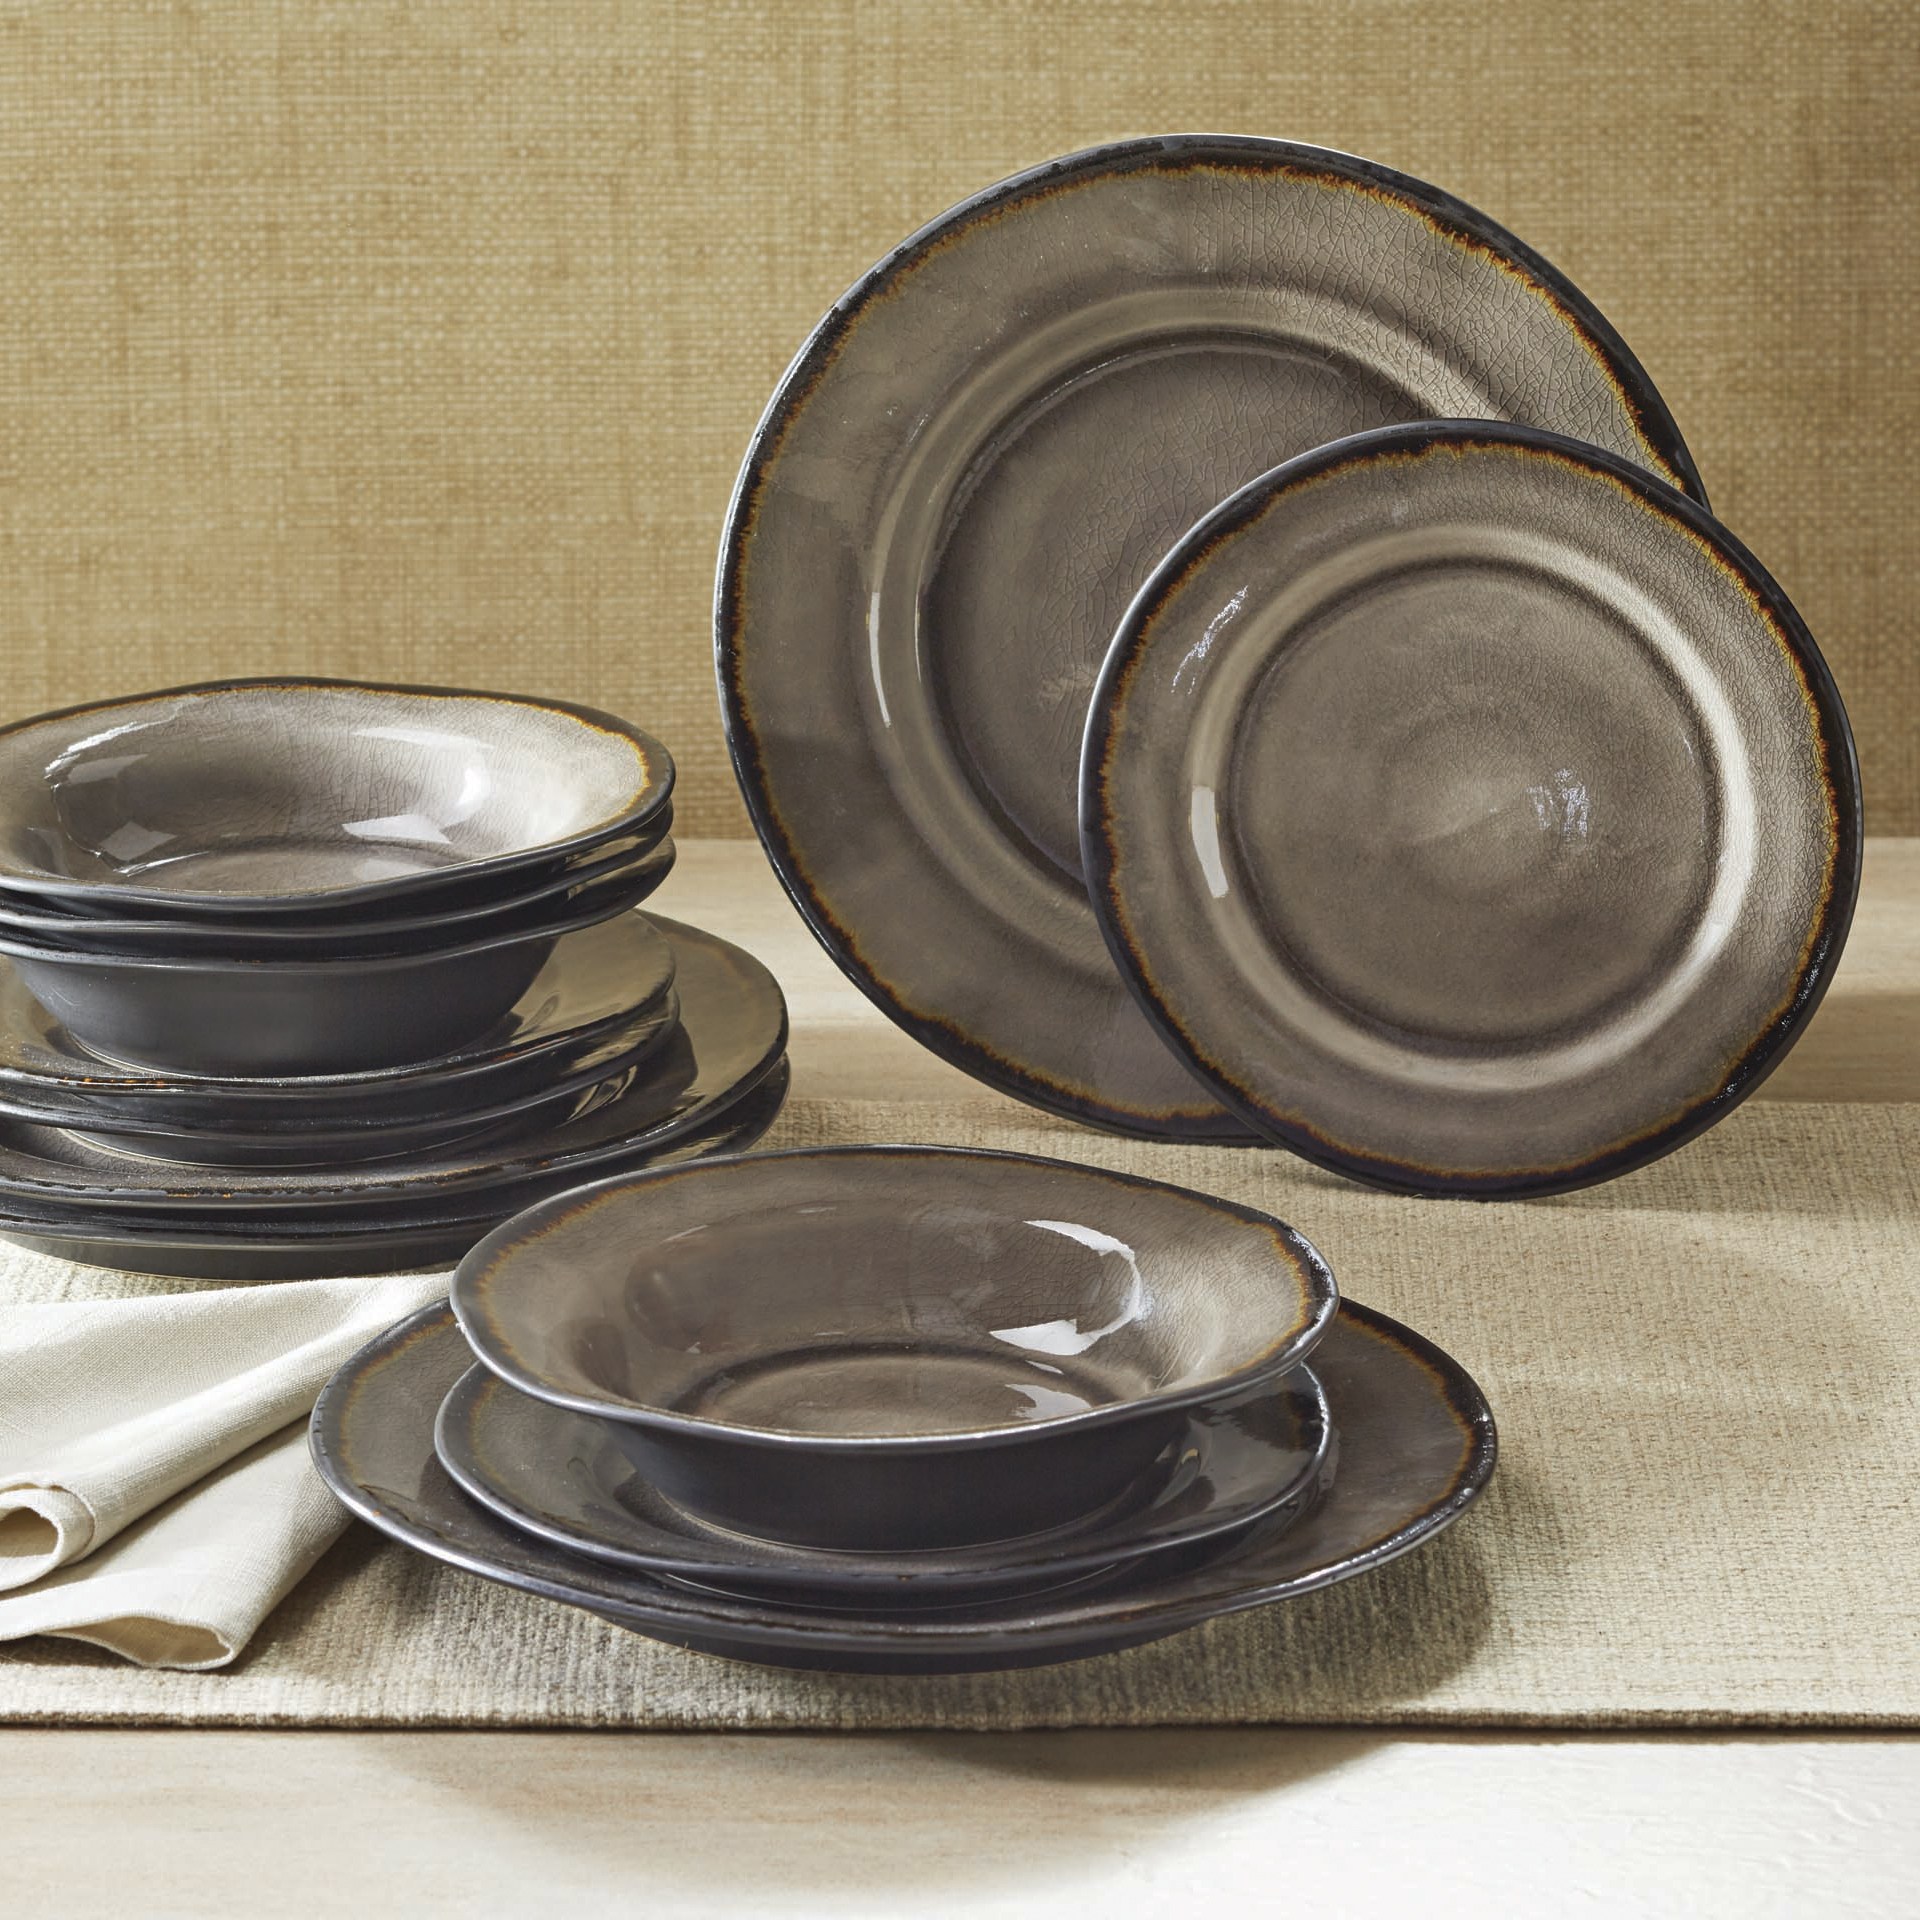 Better Homes & Gardens Bramley Dinnerware, Gray Crackle Glaze, Set of 12